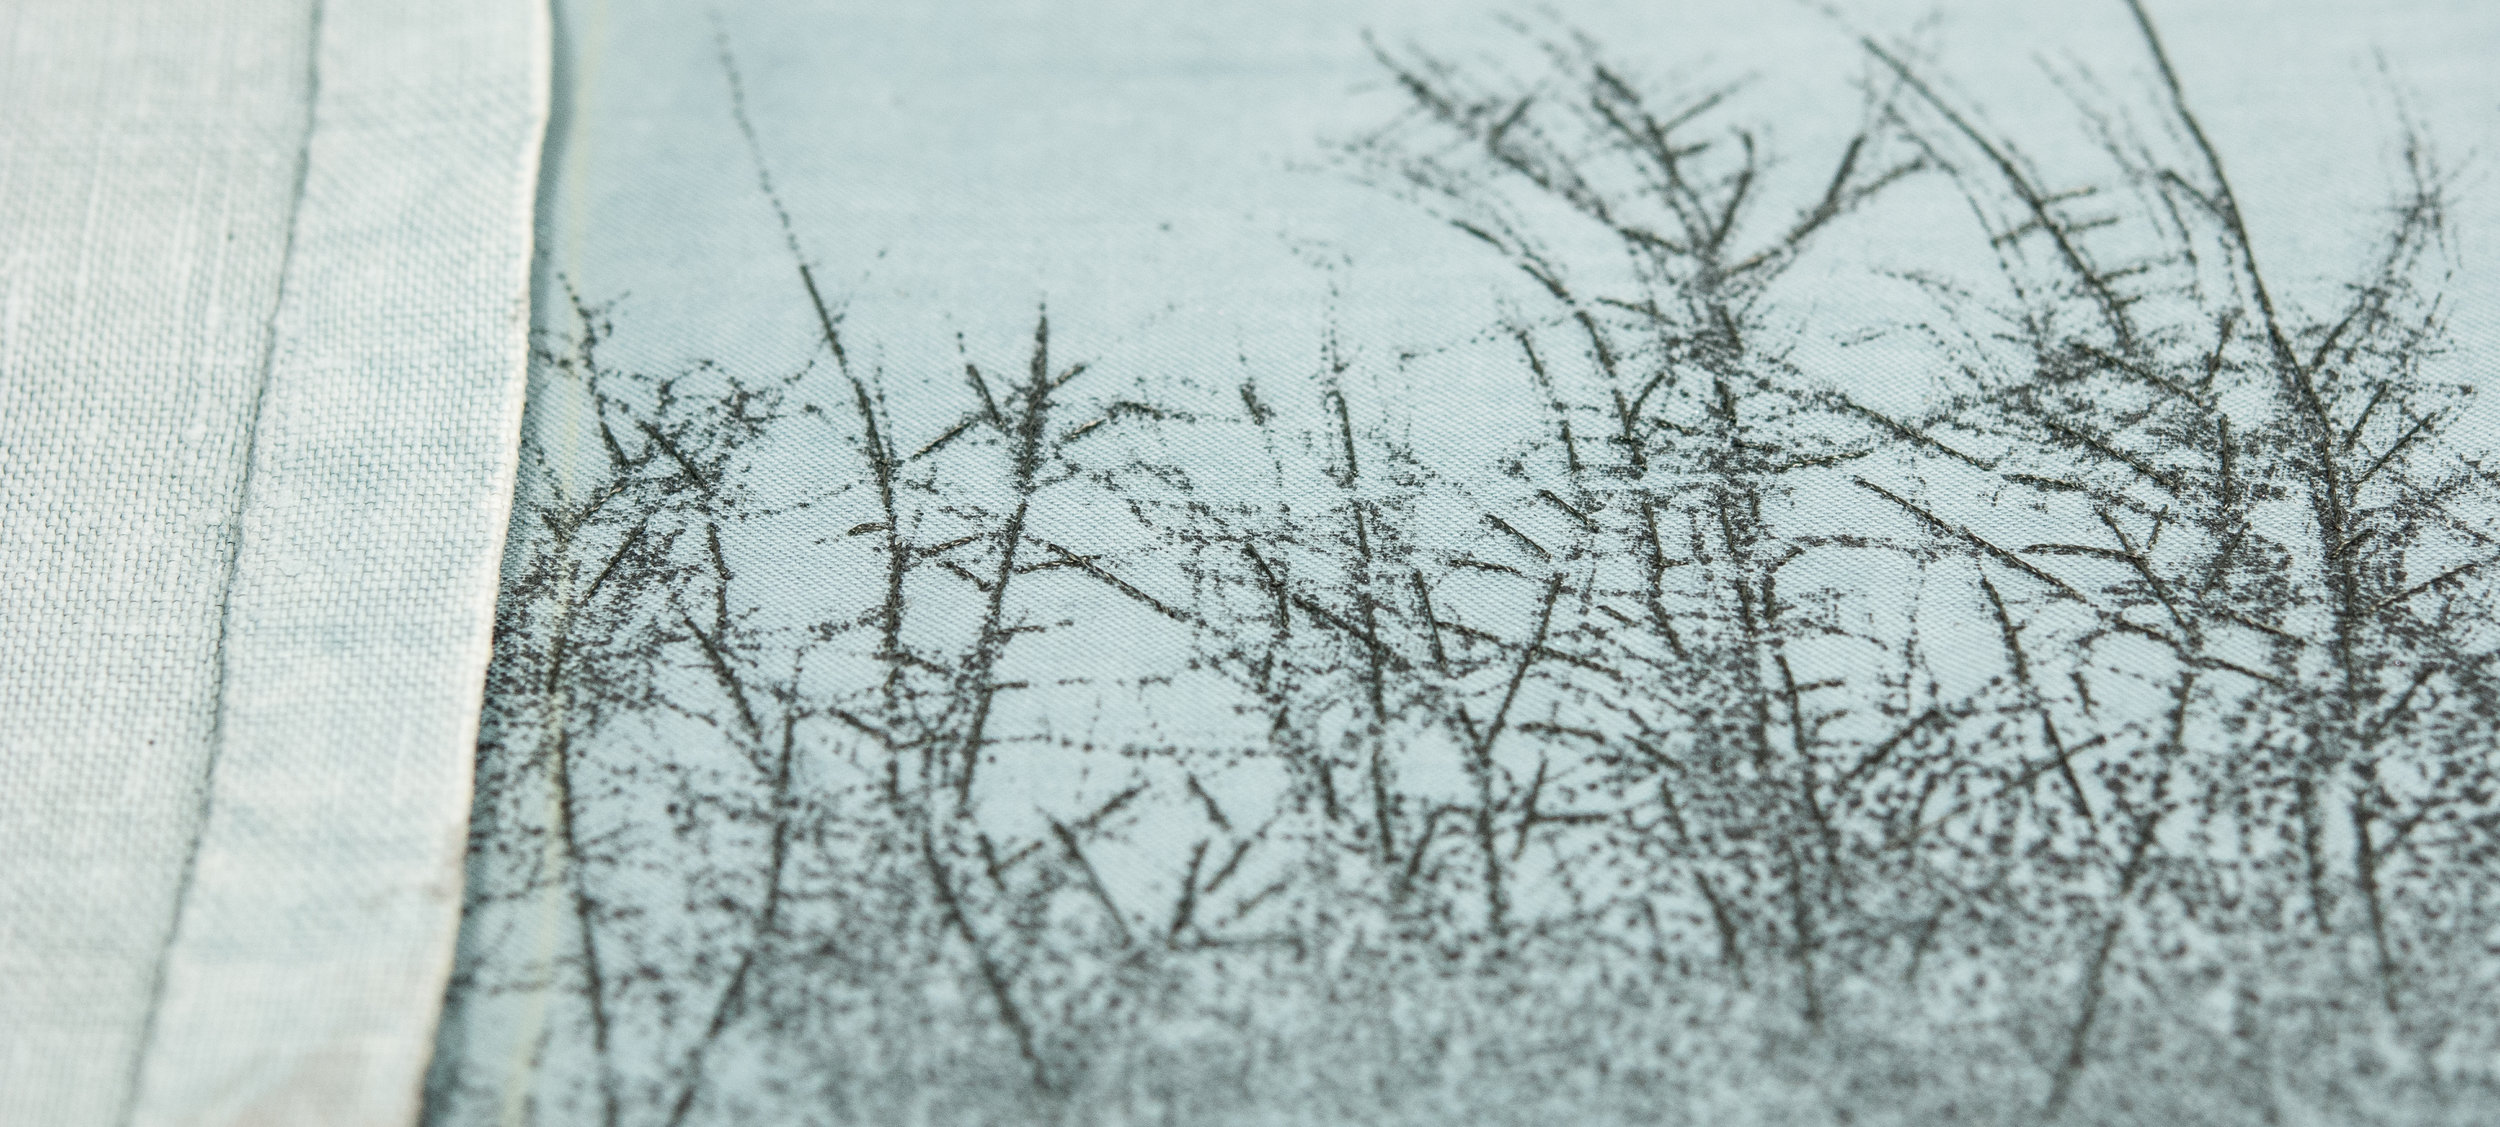 Thorn detail 2 Helen Terry October2017.jpg